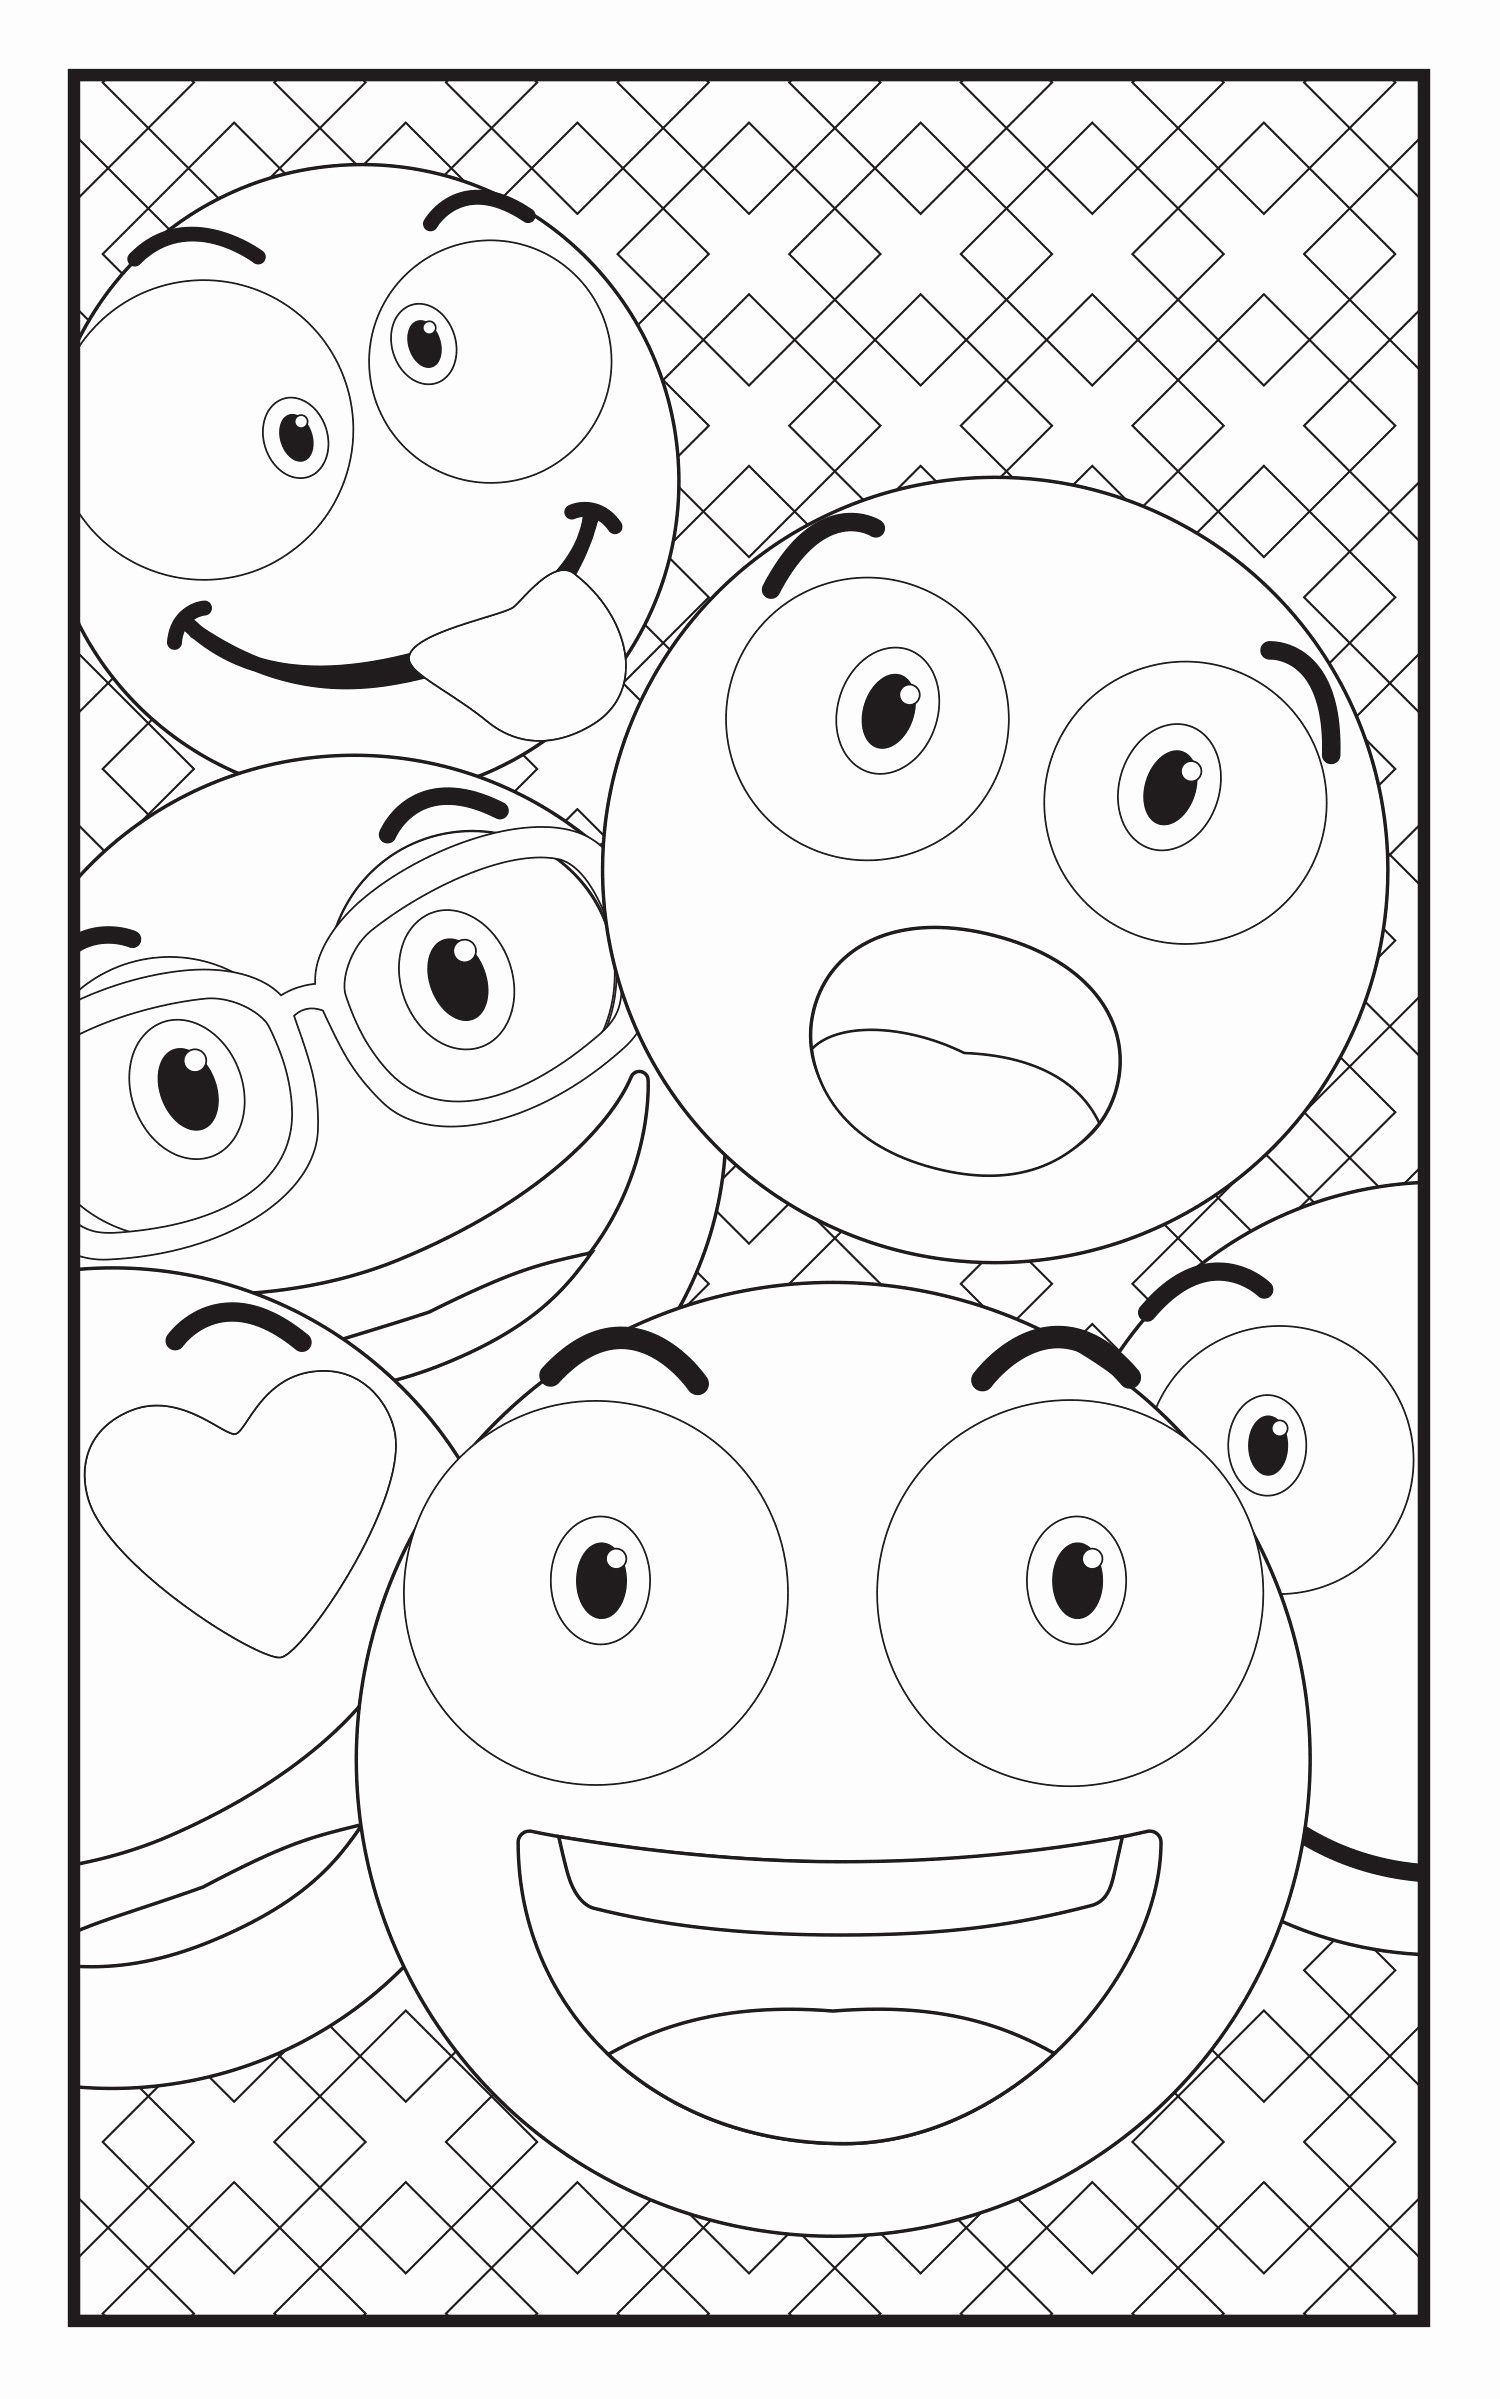 Emoji Coloring Pages Printable Lovely Sunglass Emoji Faces